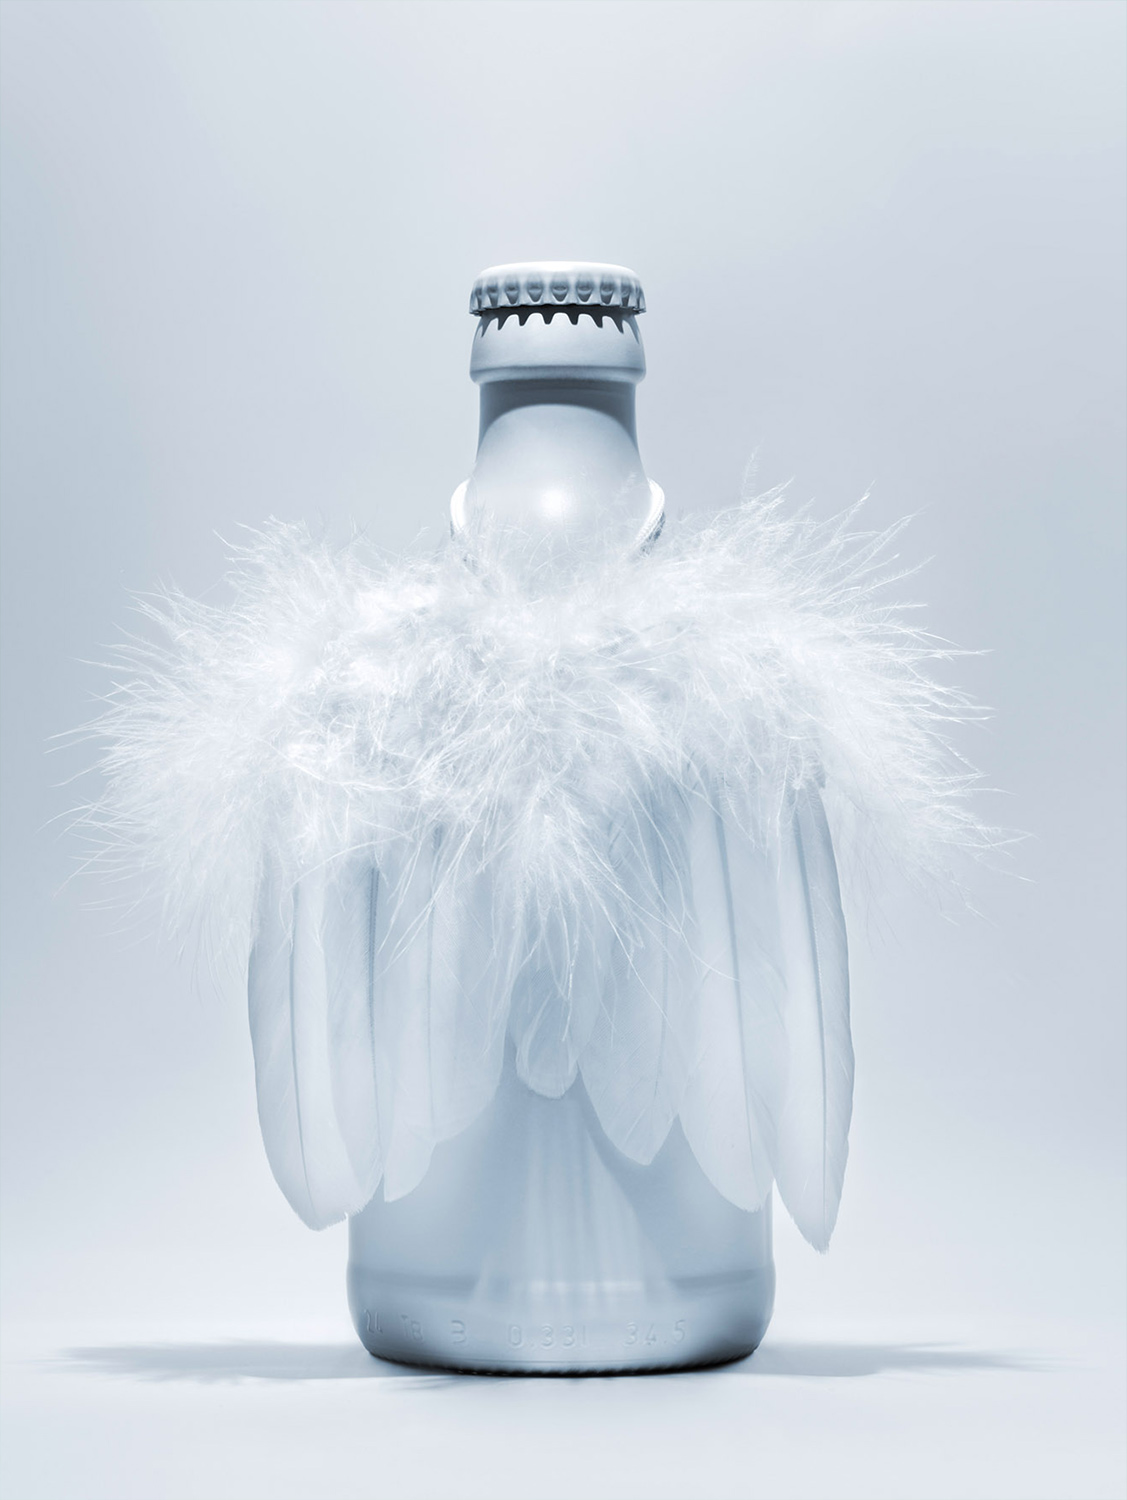 bernd_ebsen_still-life_the_bottle_angel